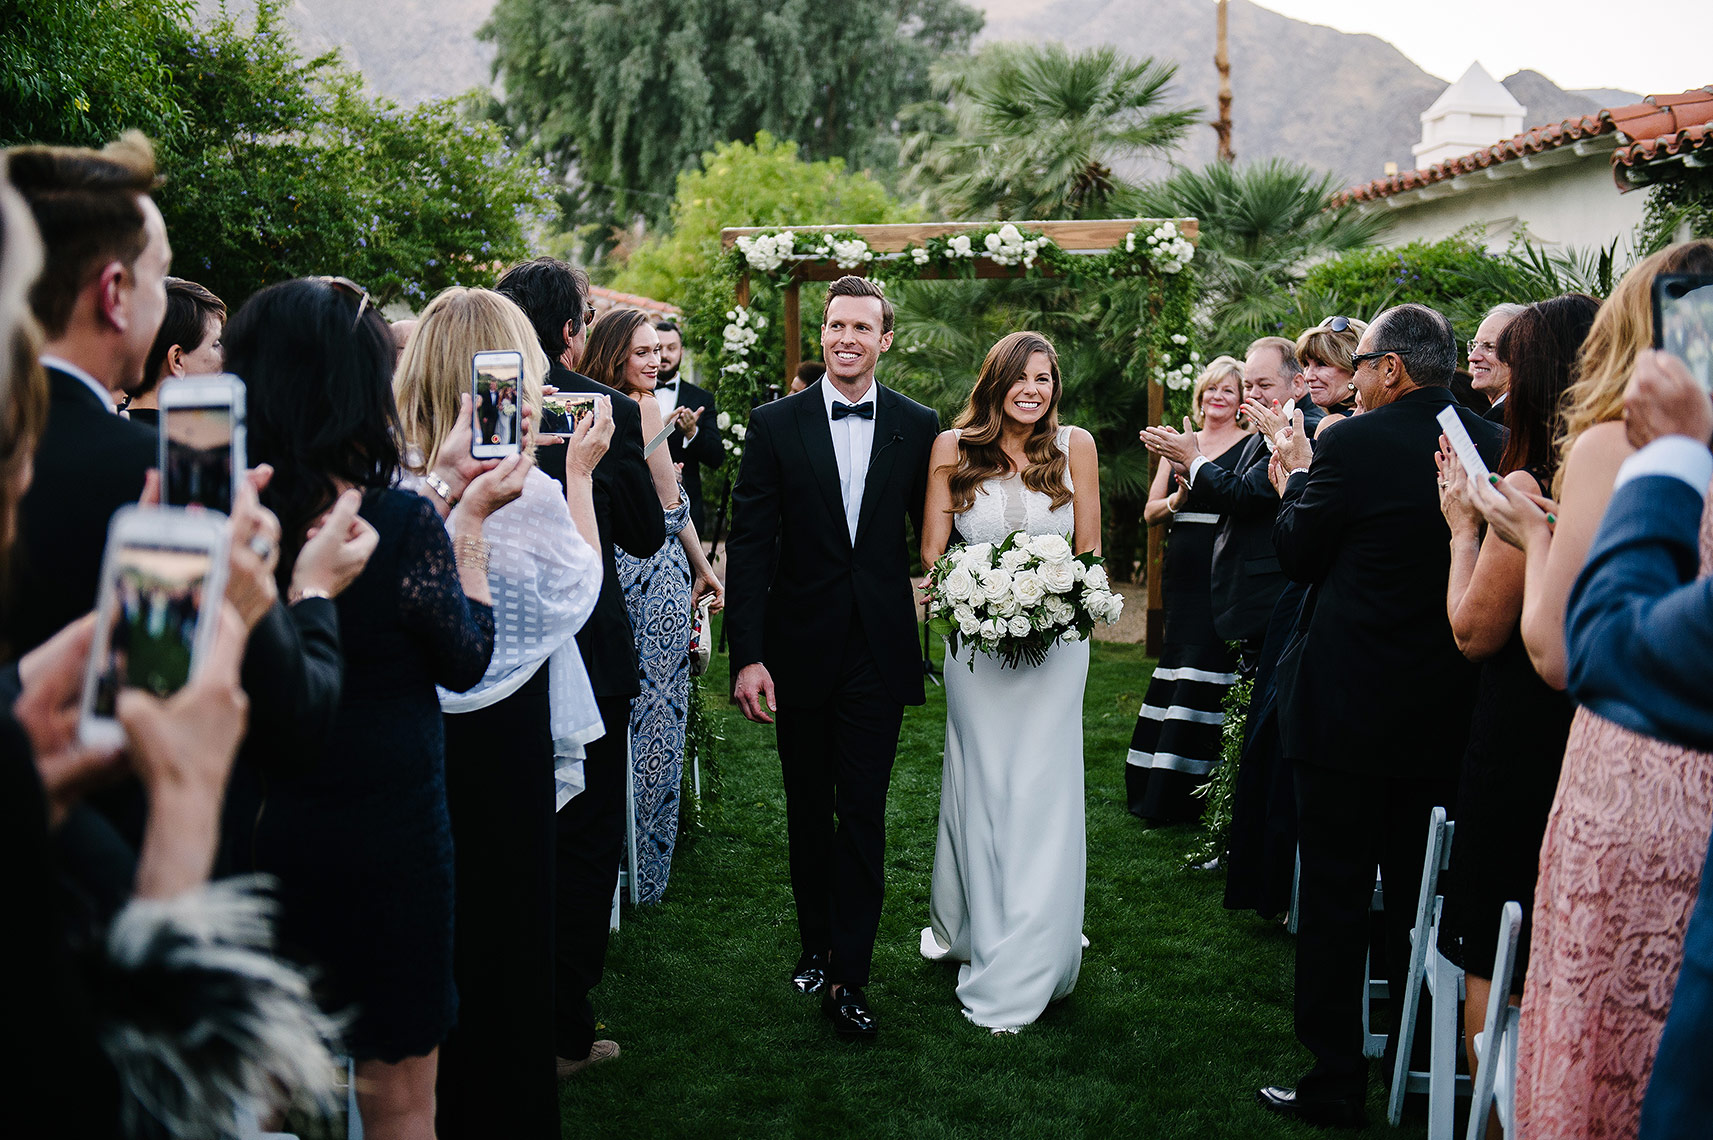 colony-palms-hotel-wedding-palm-springs-wedding-photography-16.jpg